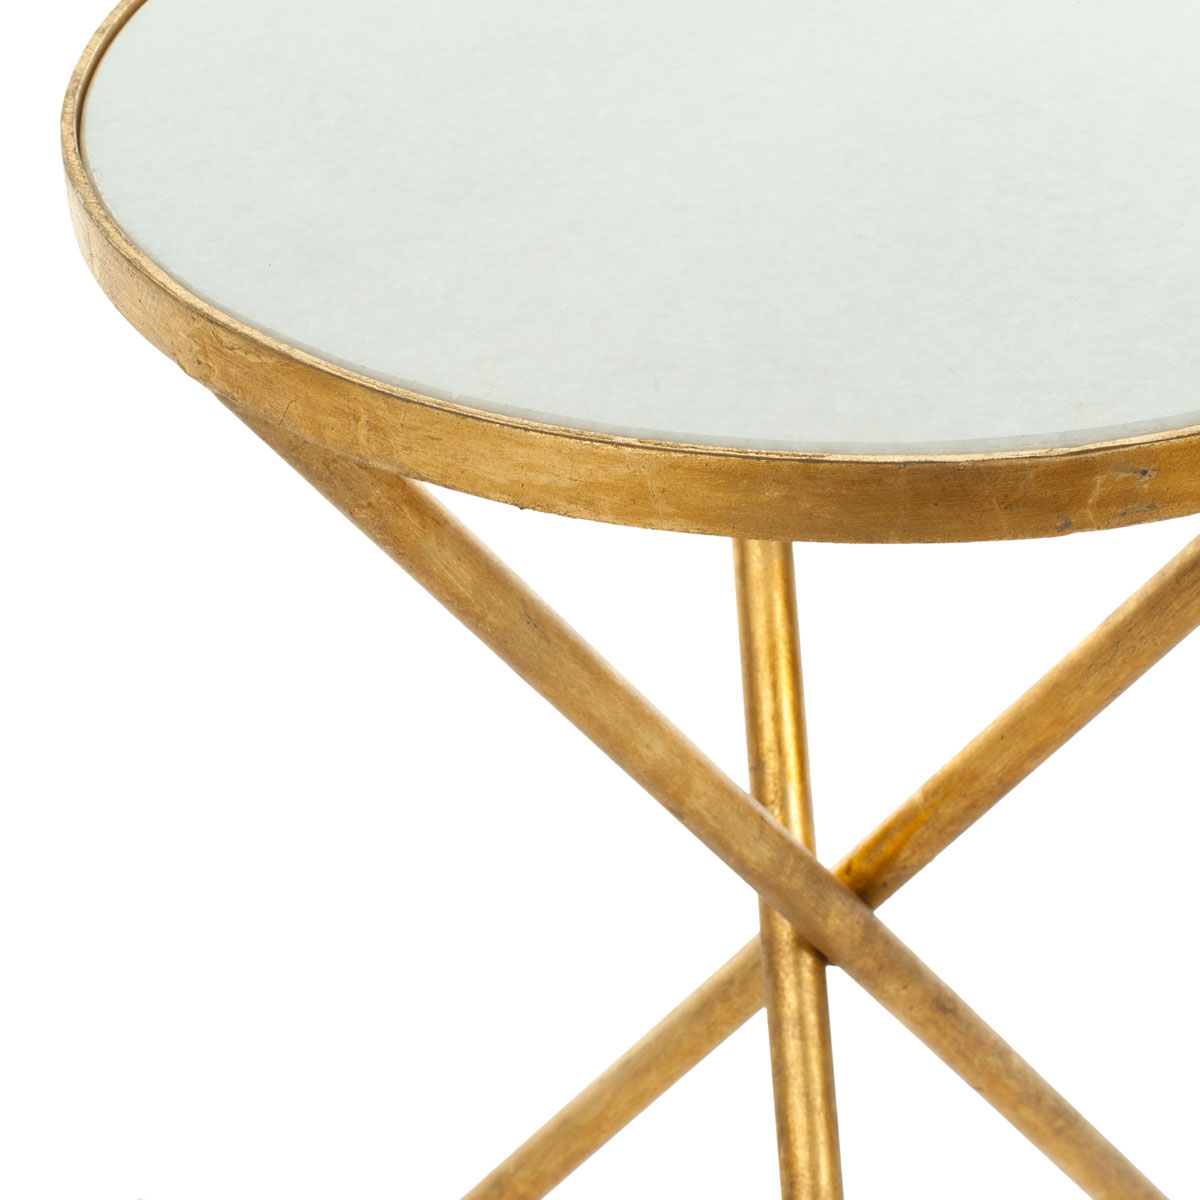 accent tables furniture safavieh detail sage green marcie gold foil round top table design small grey bedroom chair dining decor ideas acrylic coffee outdoor tablecloth vintage